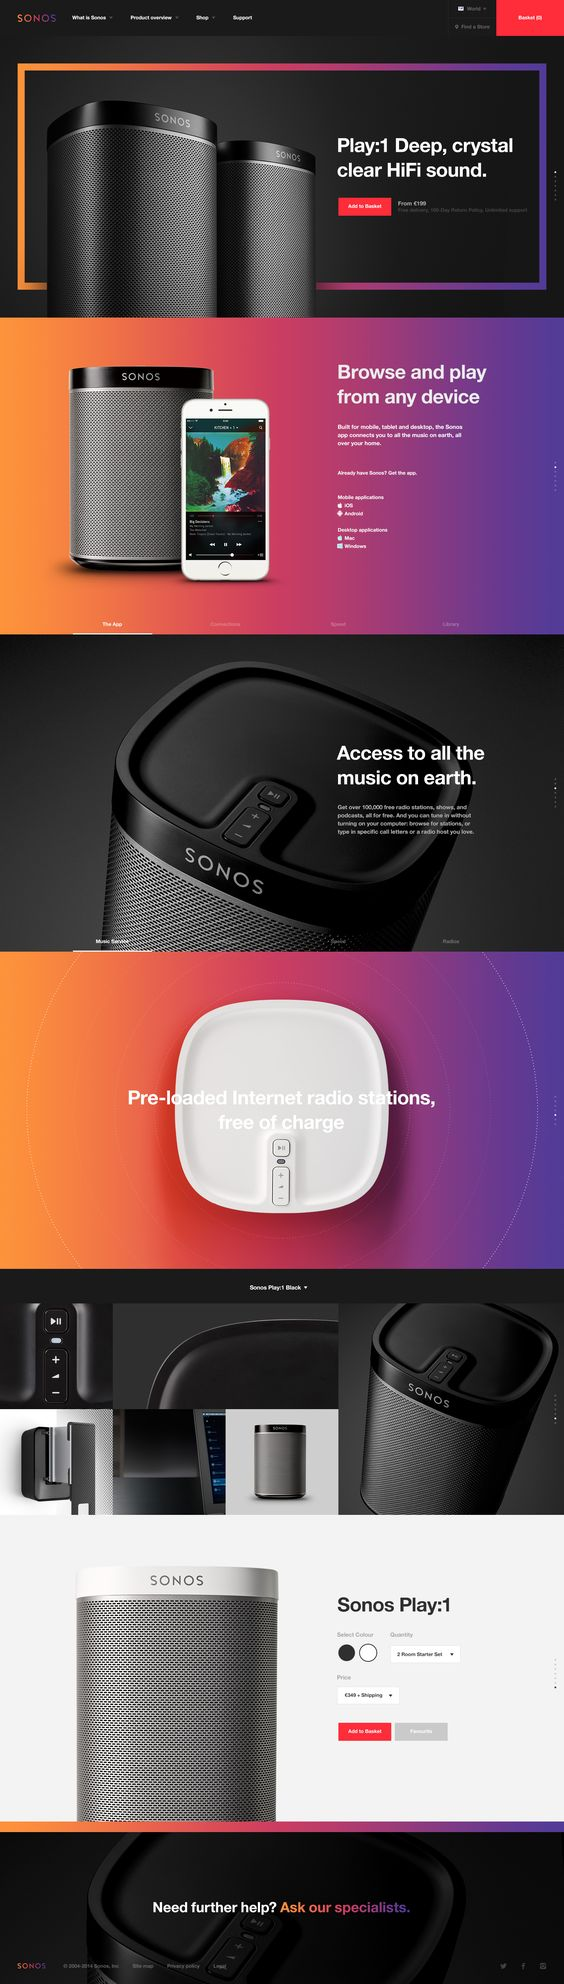 Sonos. The perfect player. (More design inspiration at www.aldenchong.com) #webdesign